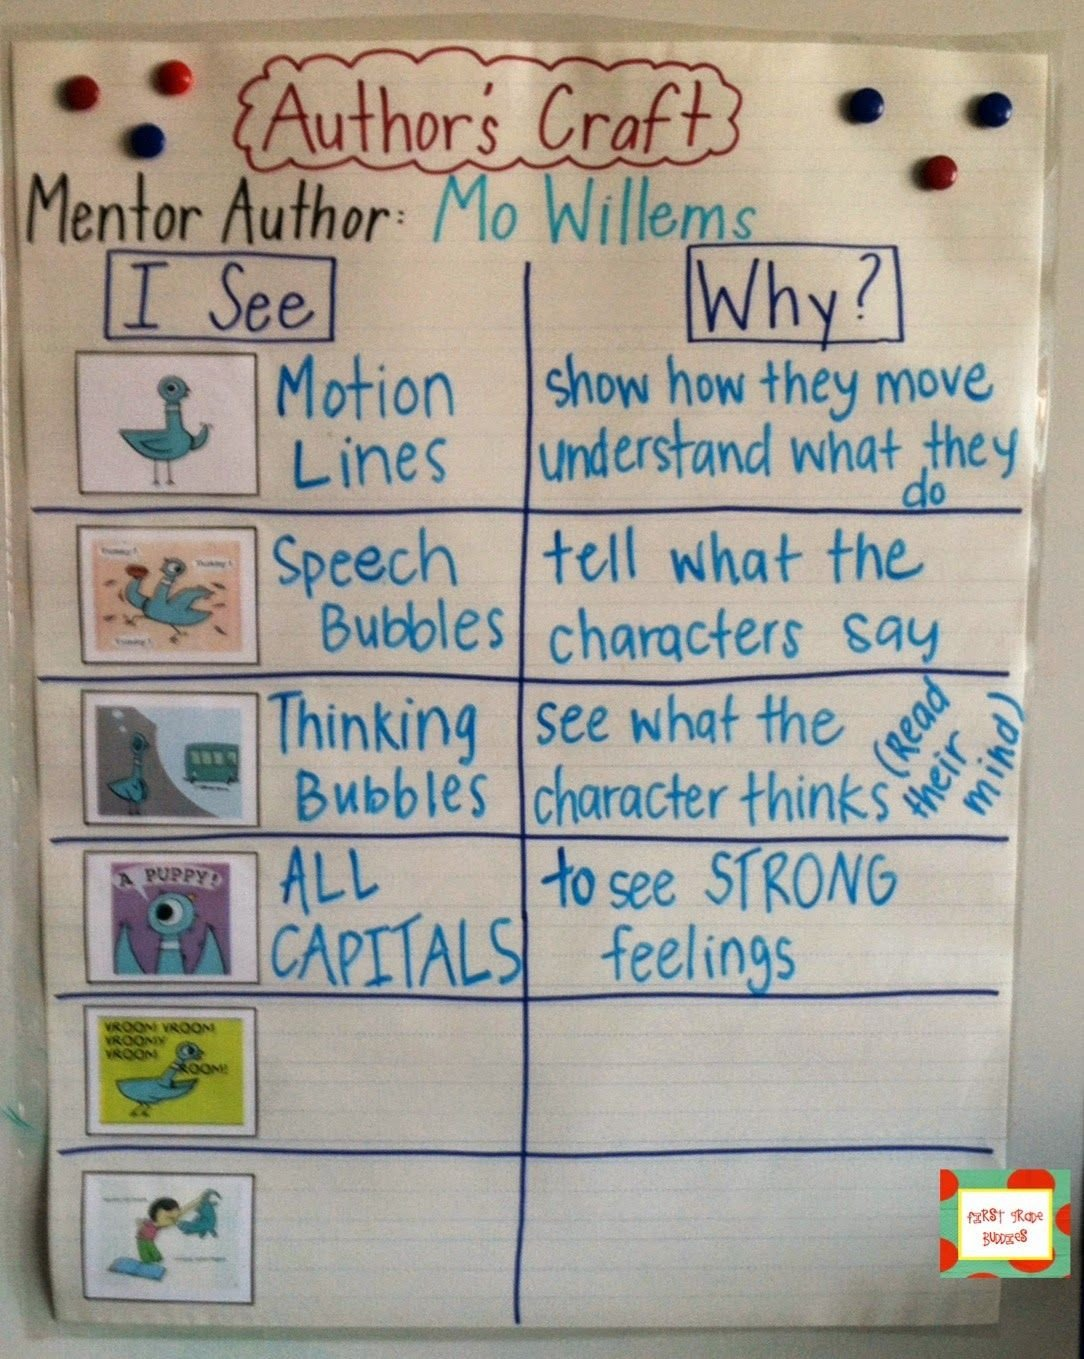 Author Craft Worksheets First Grade Bud S Five for Friday 4 11 14